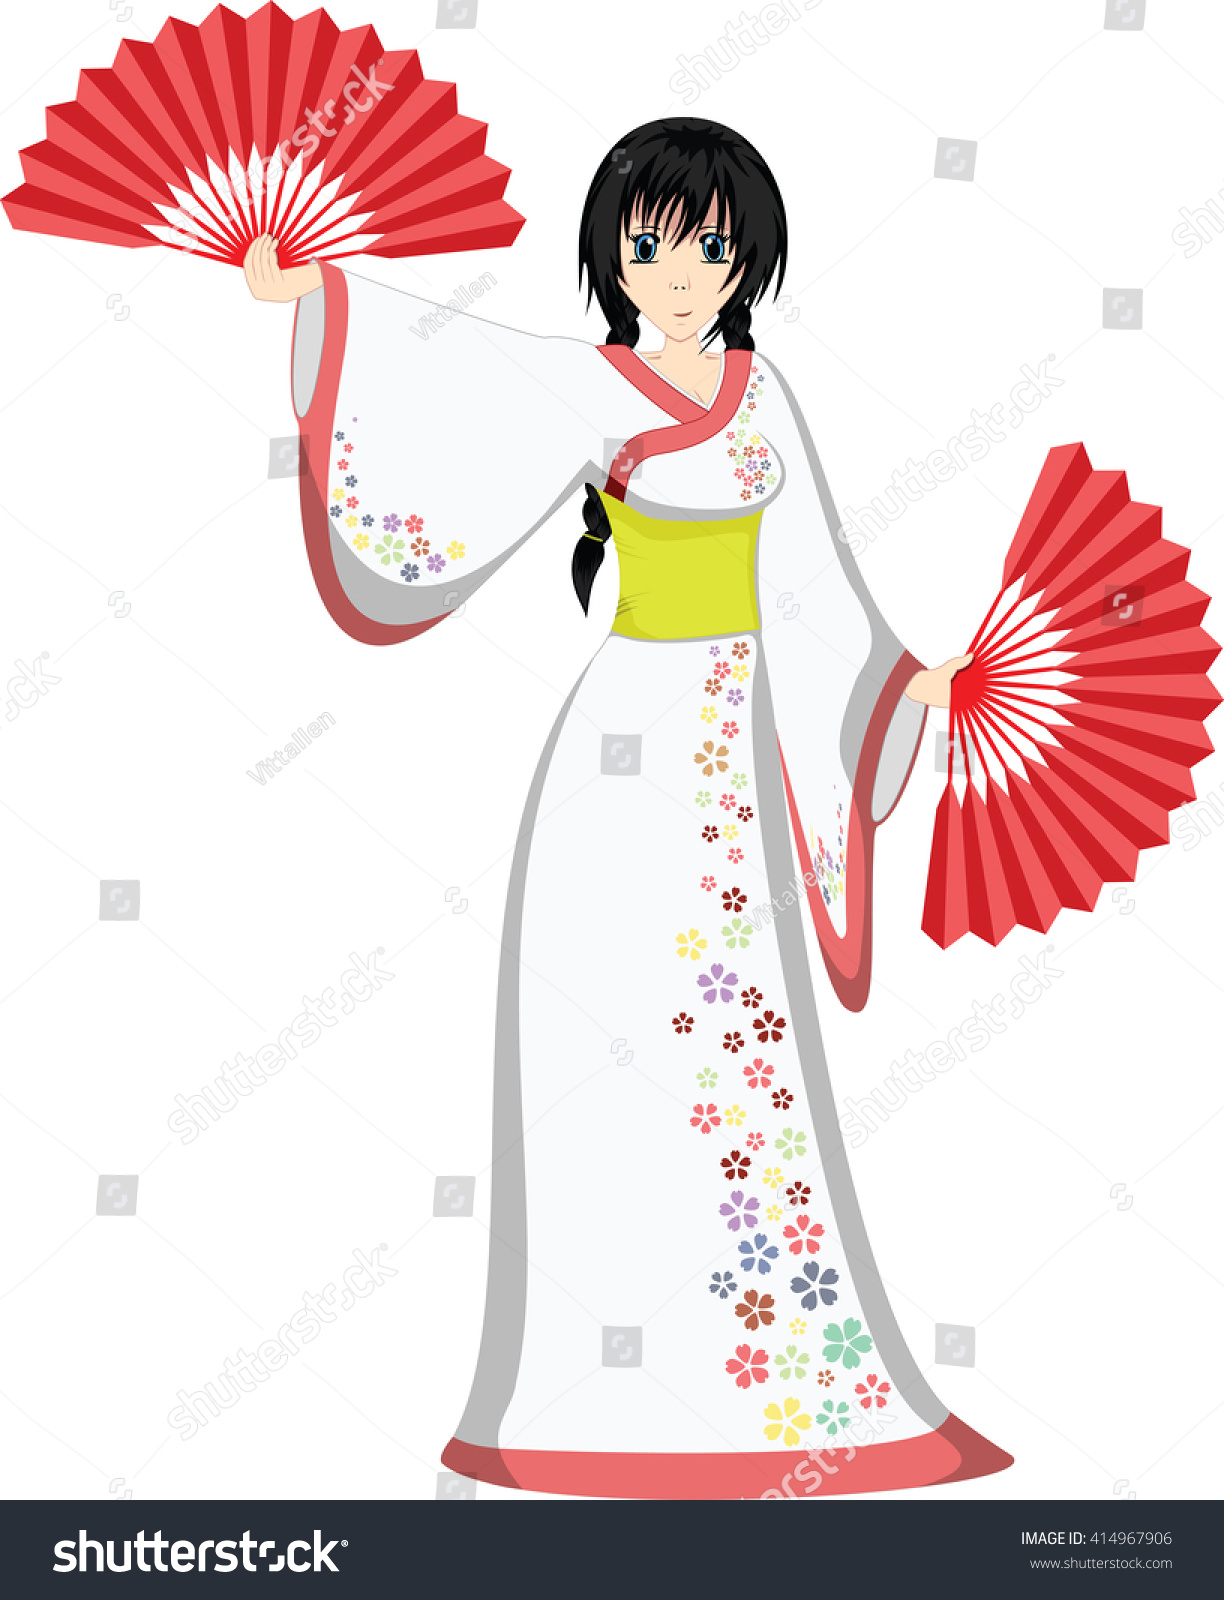 Japanese Anime Girl In White Dress Dancing With Fans